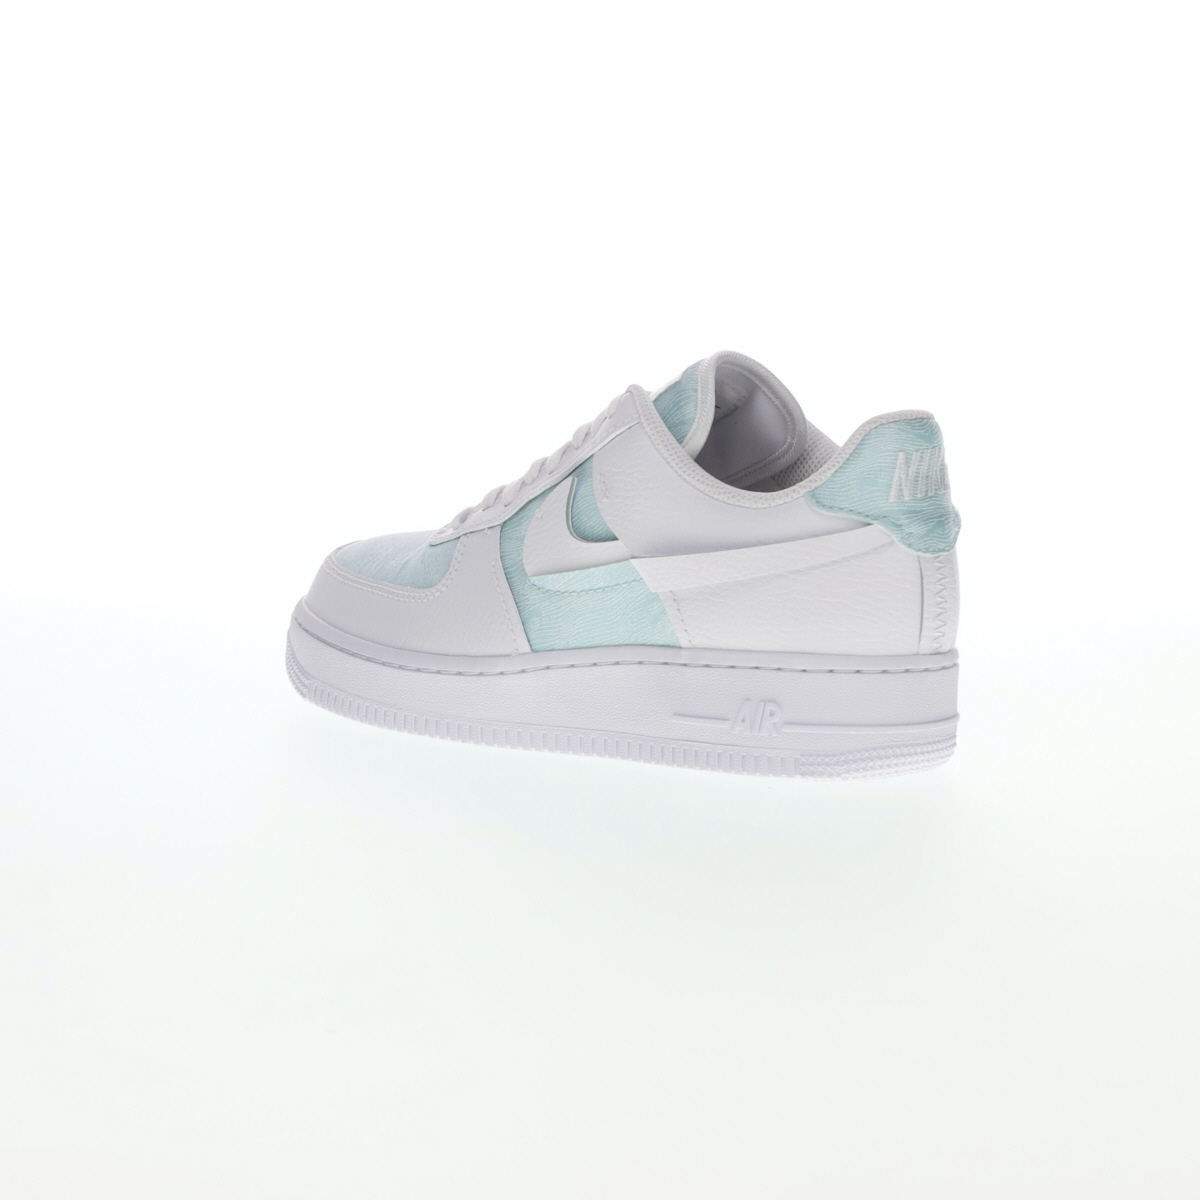 nike realflex shoes clearance sale last pairs 14r